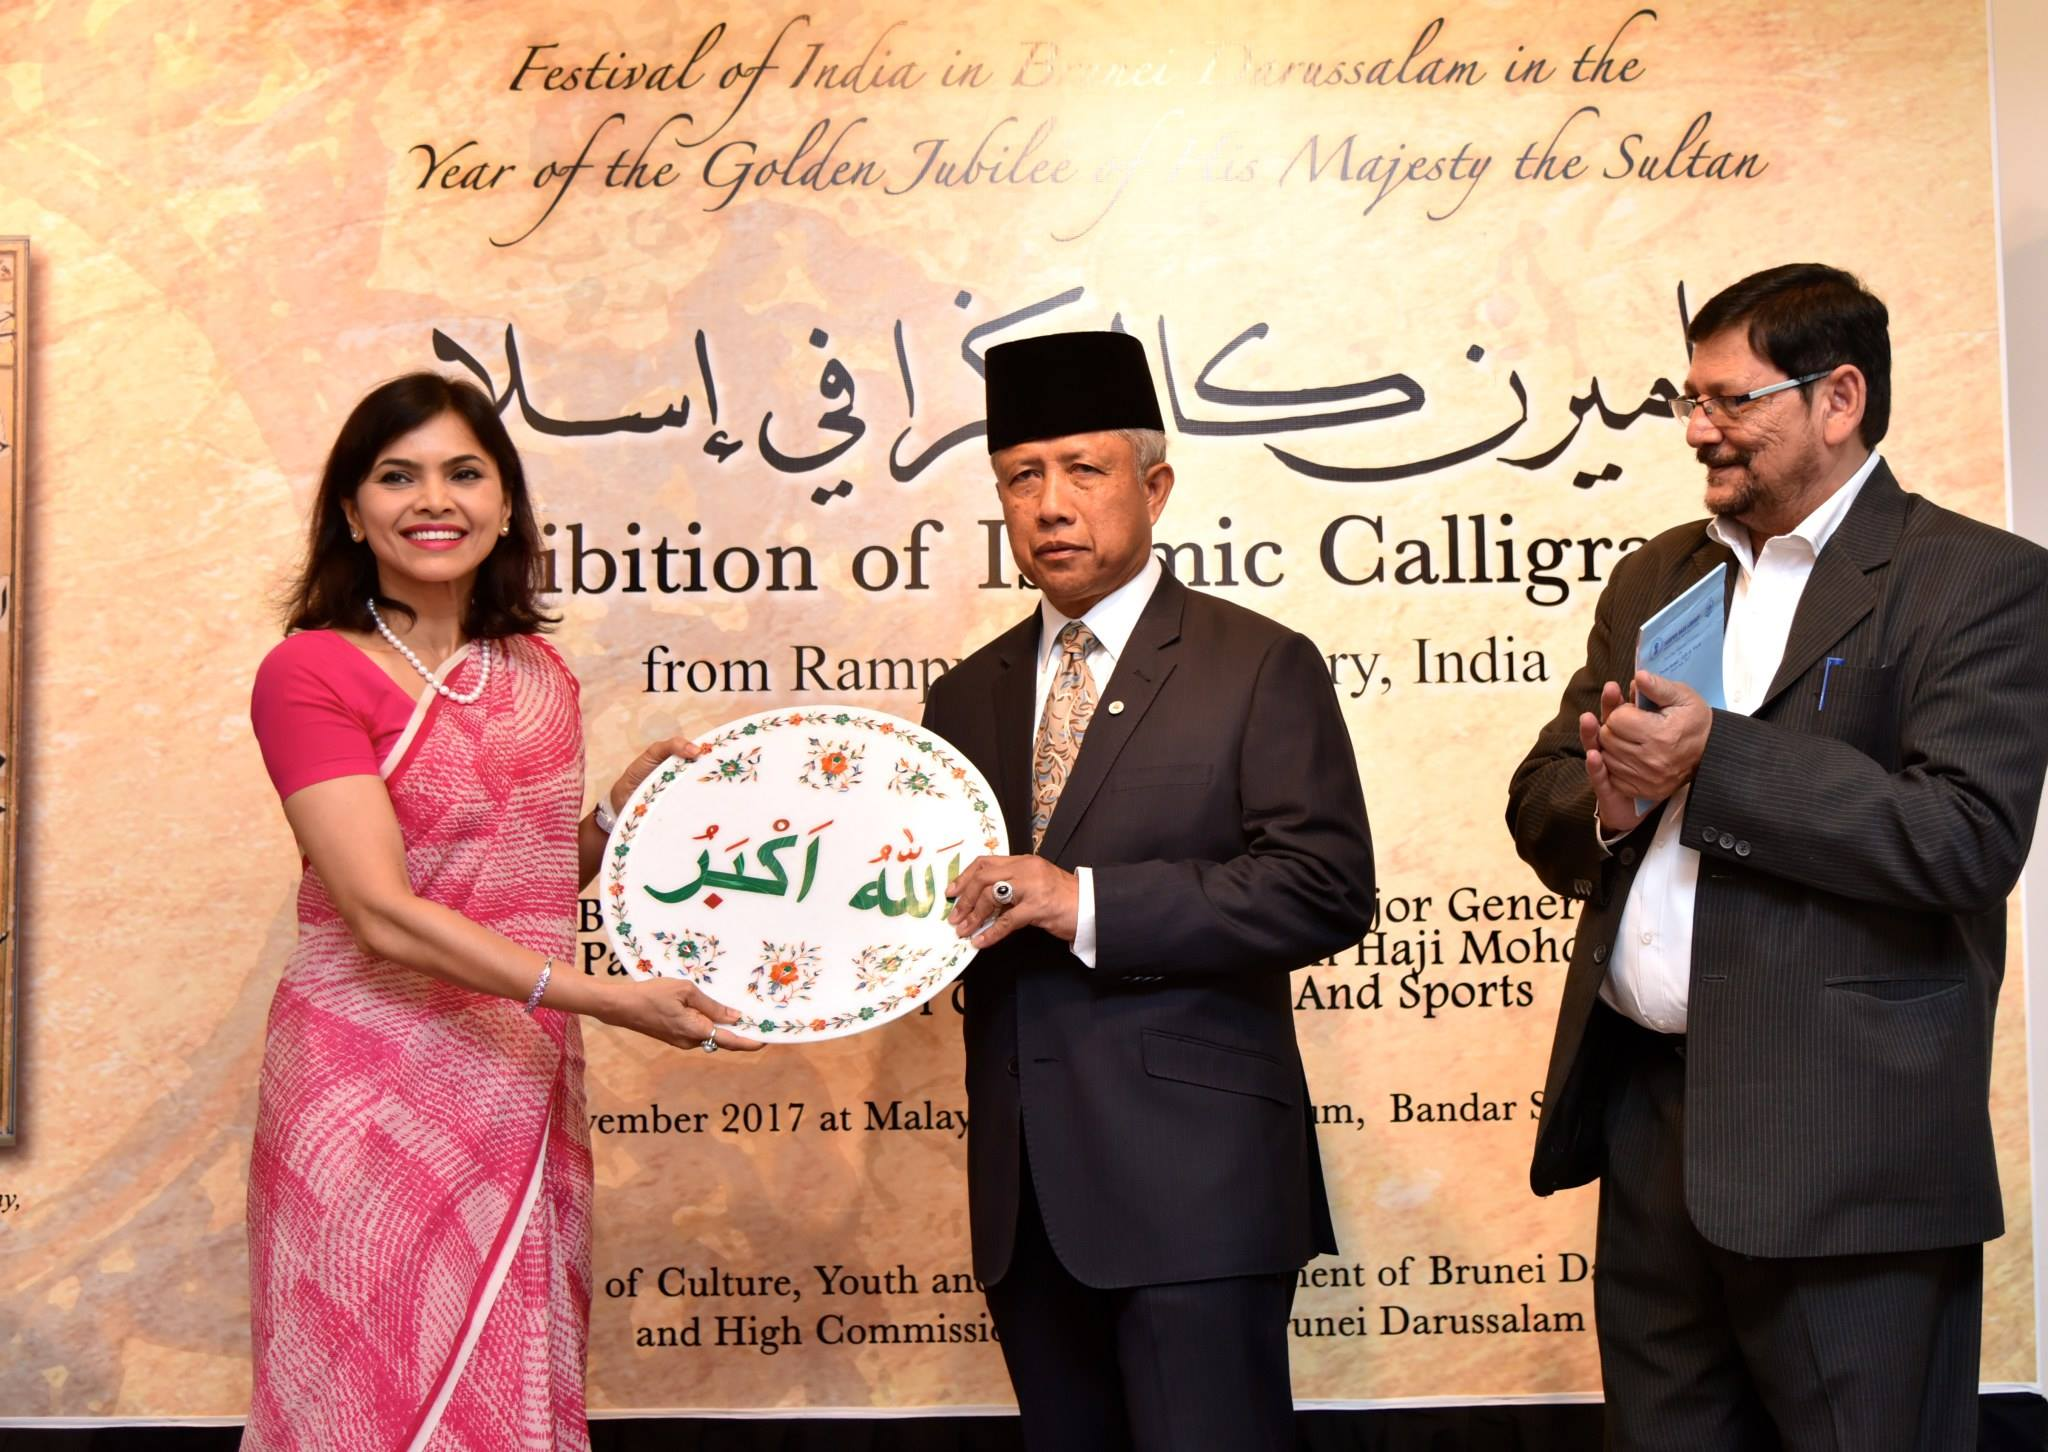 Exhibition of Islamic Calligraphy from Rampur Raza Library opens in Brunei Darussalam as part of Festival of India